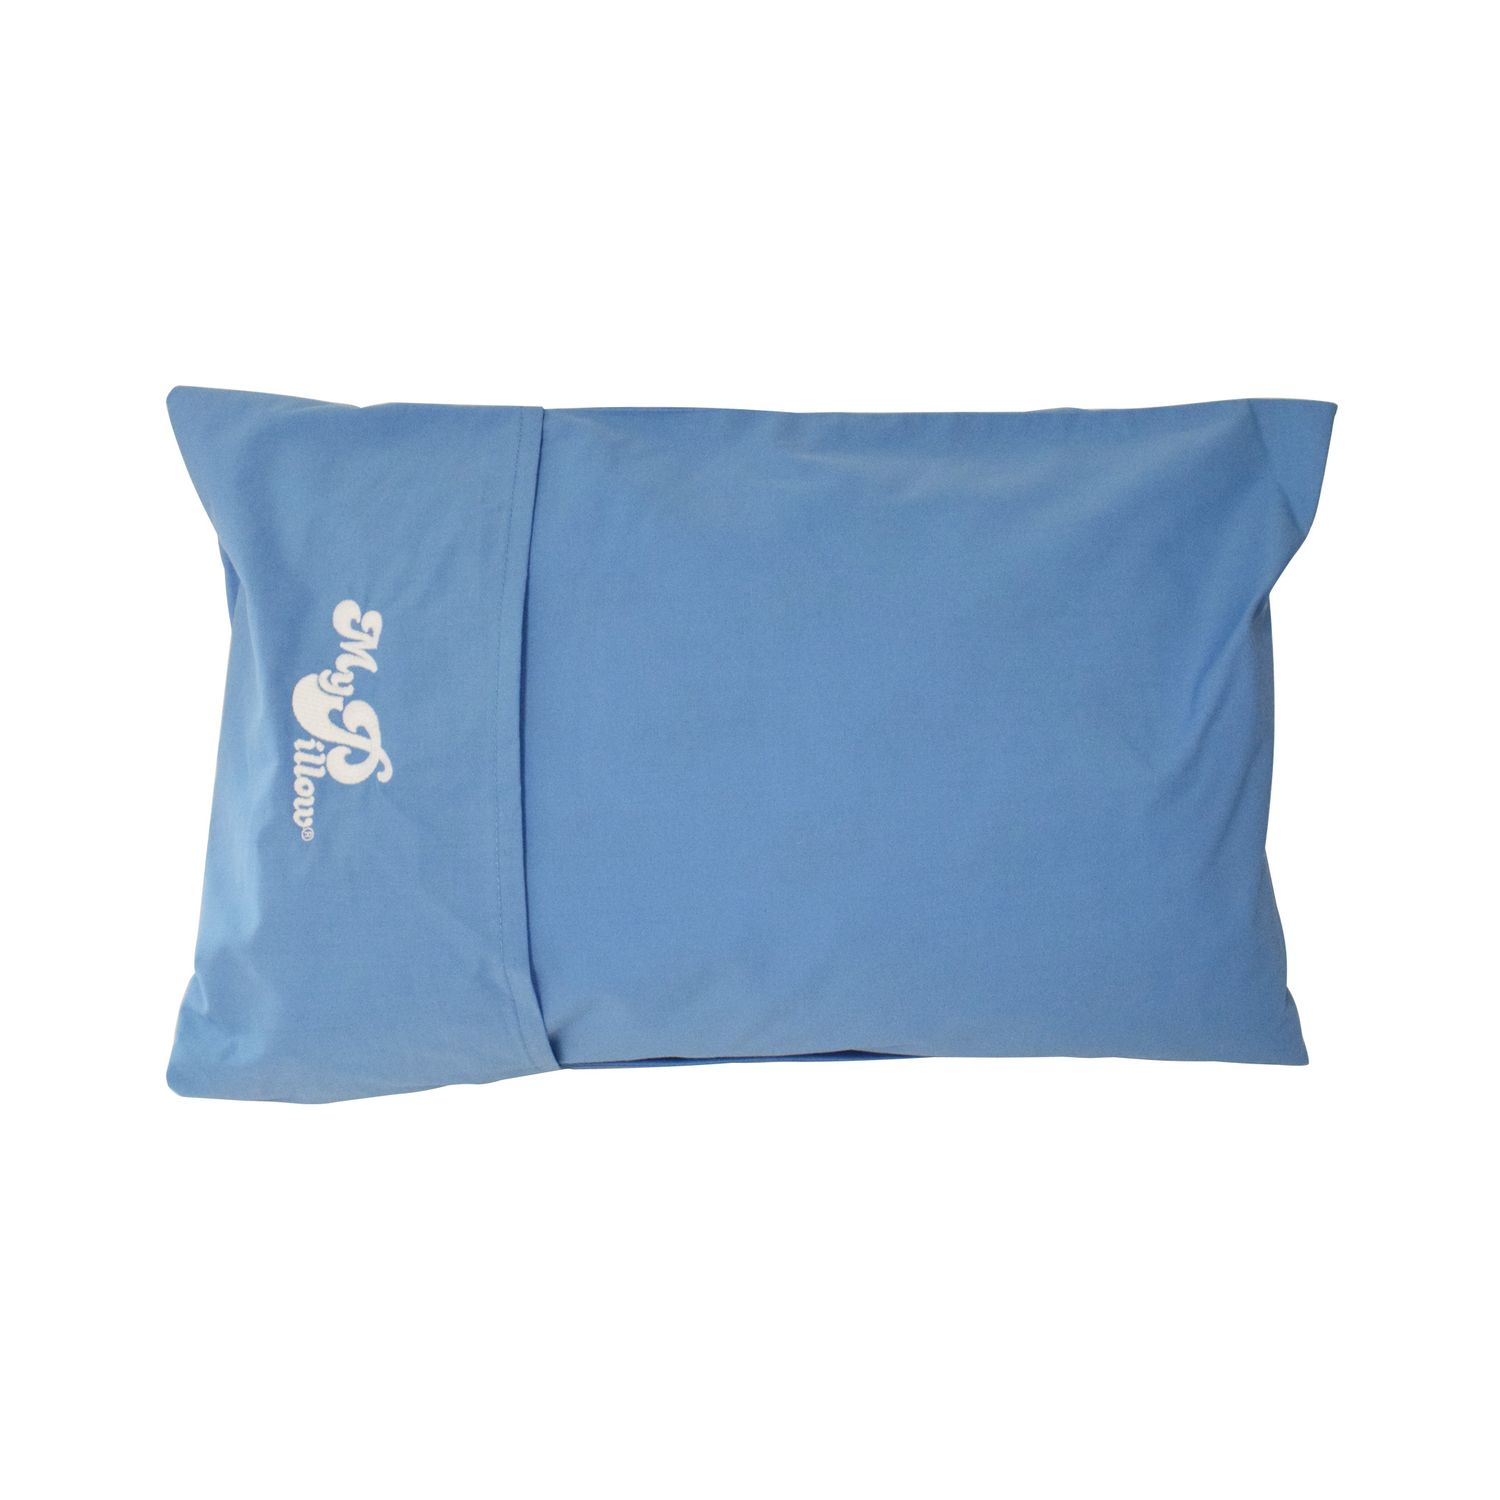 My Pillow Pillows, Bed & Bath | Kohl\'s